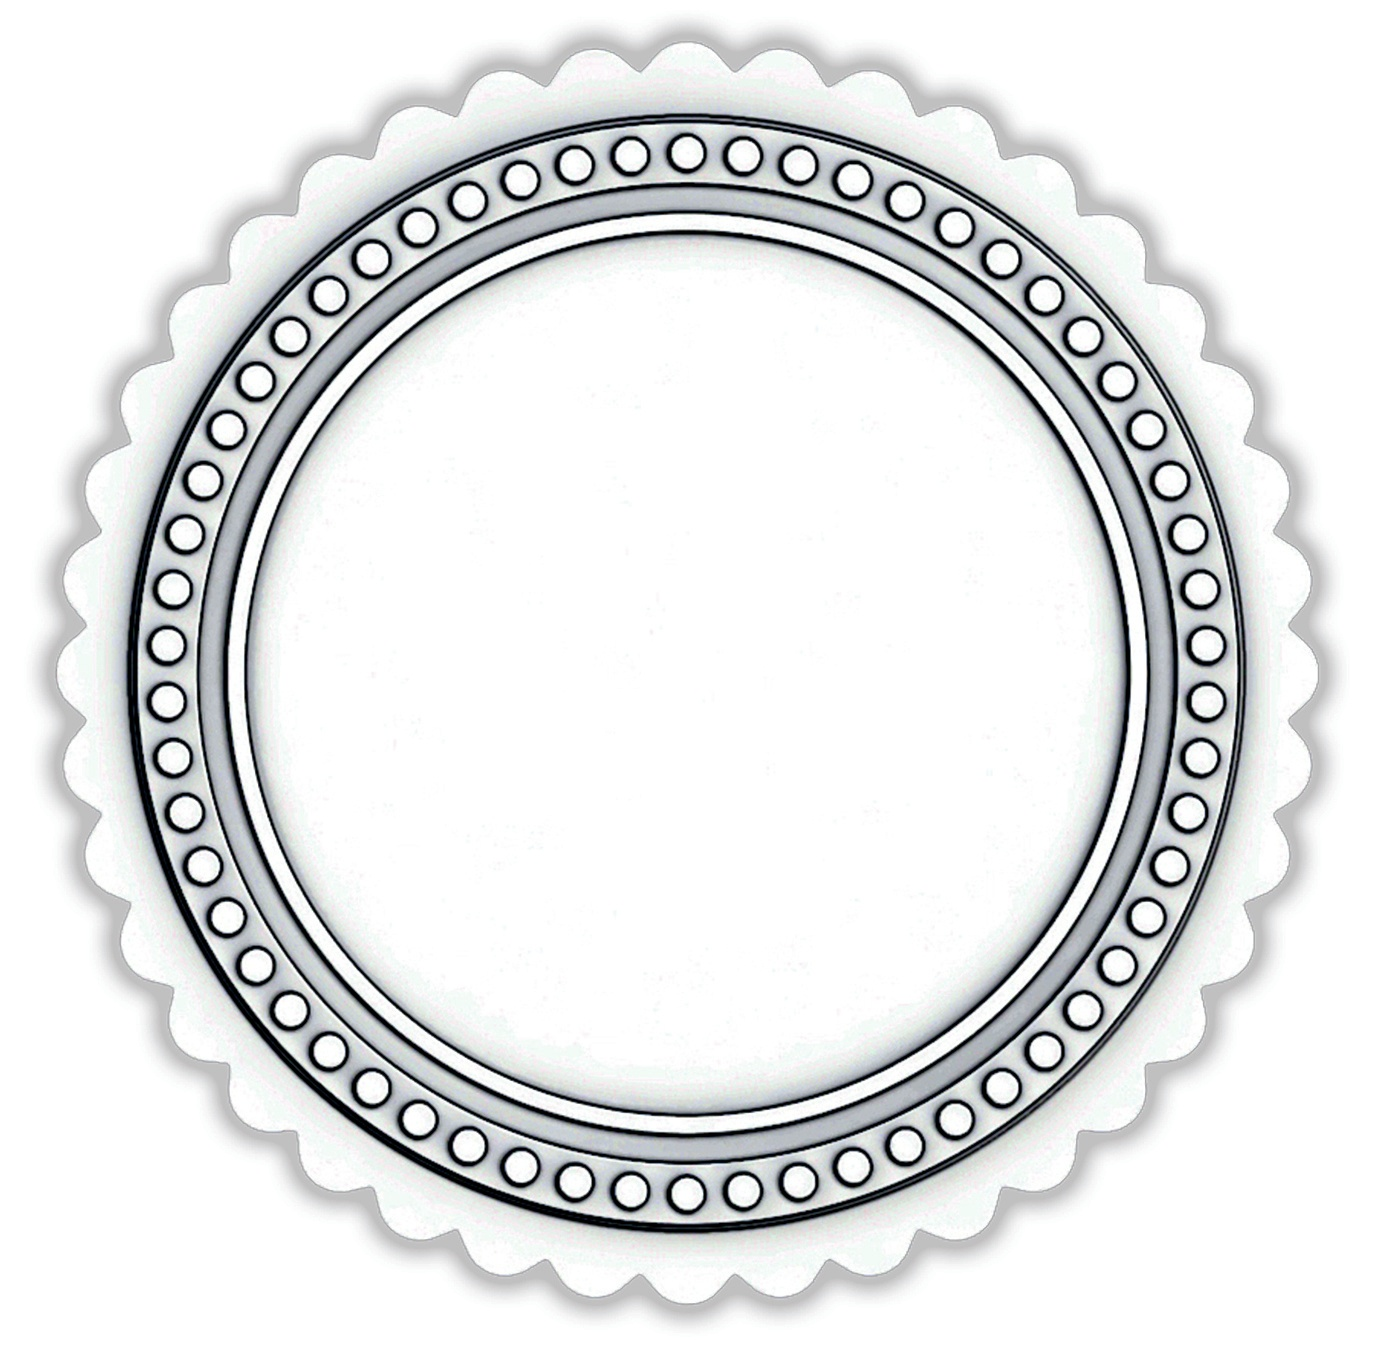 Sizzix - Switchlits Embossing Folder - Seal by Tim Holtz